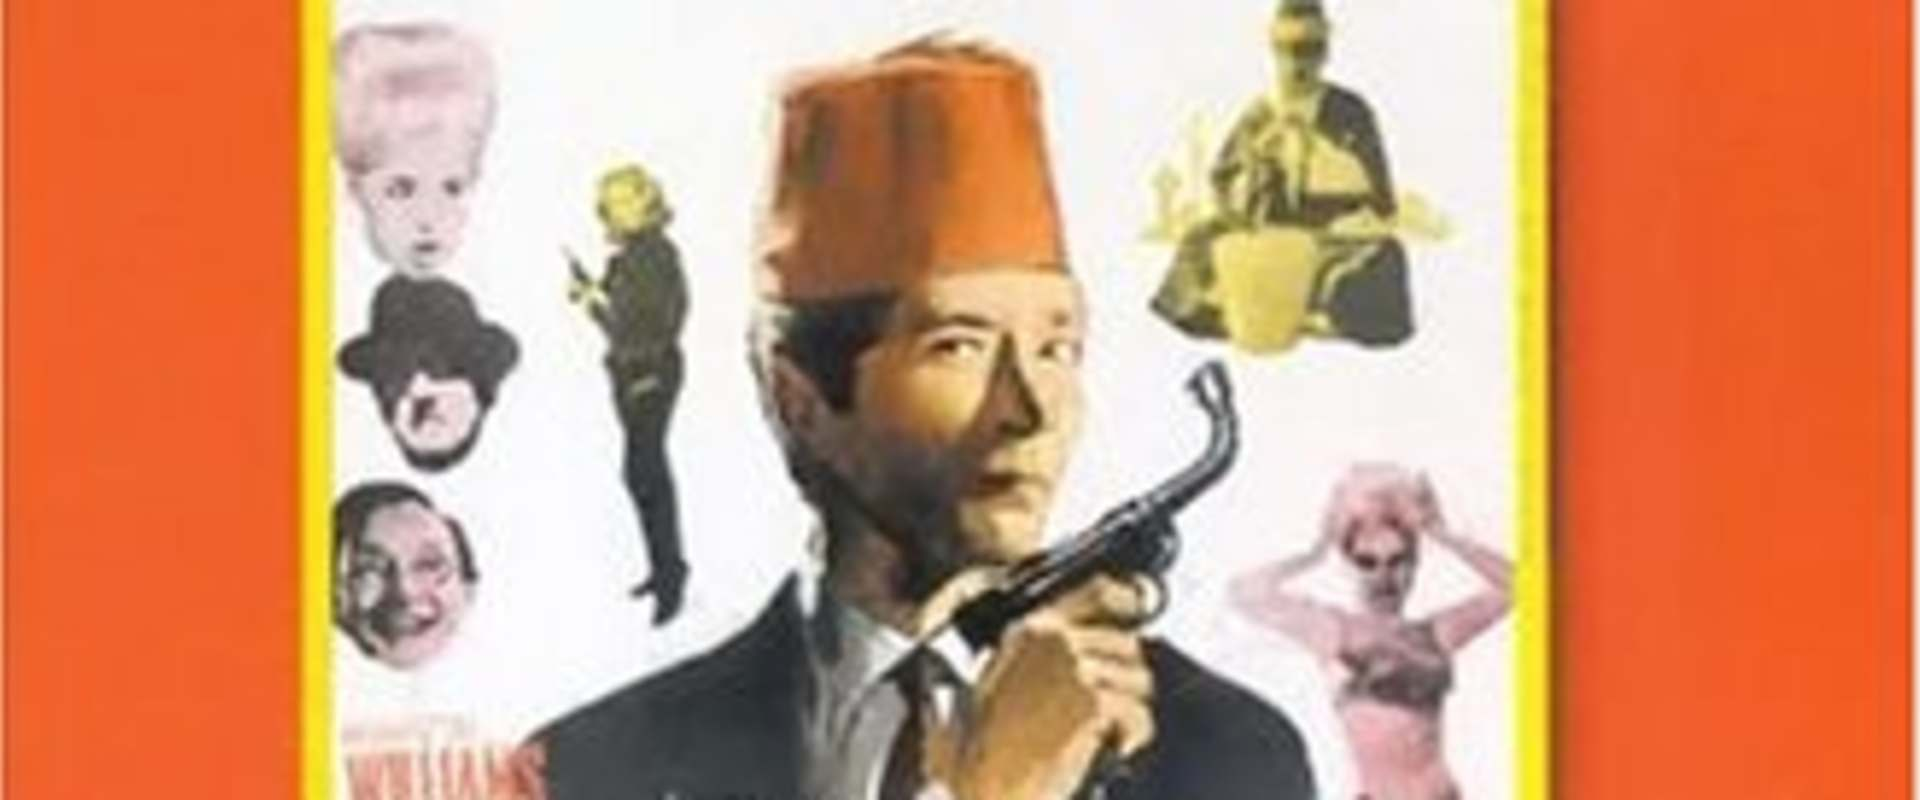 Carry on Spying background 1